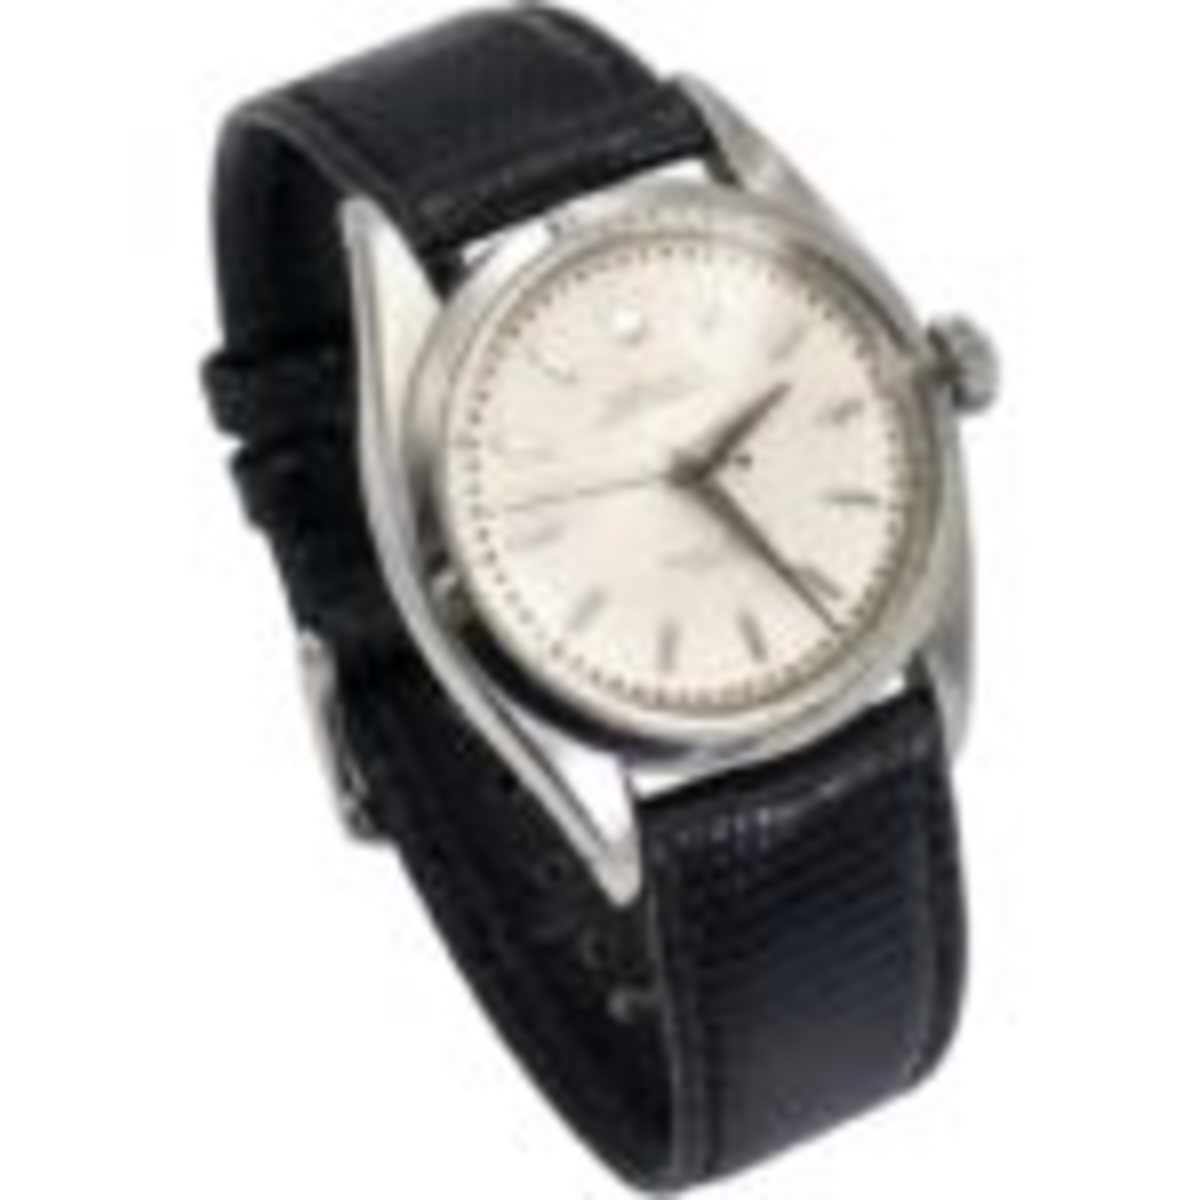 1954 Rolex Oyster Perpetual Movement wristwatch.